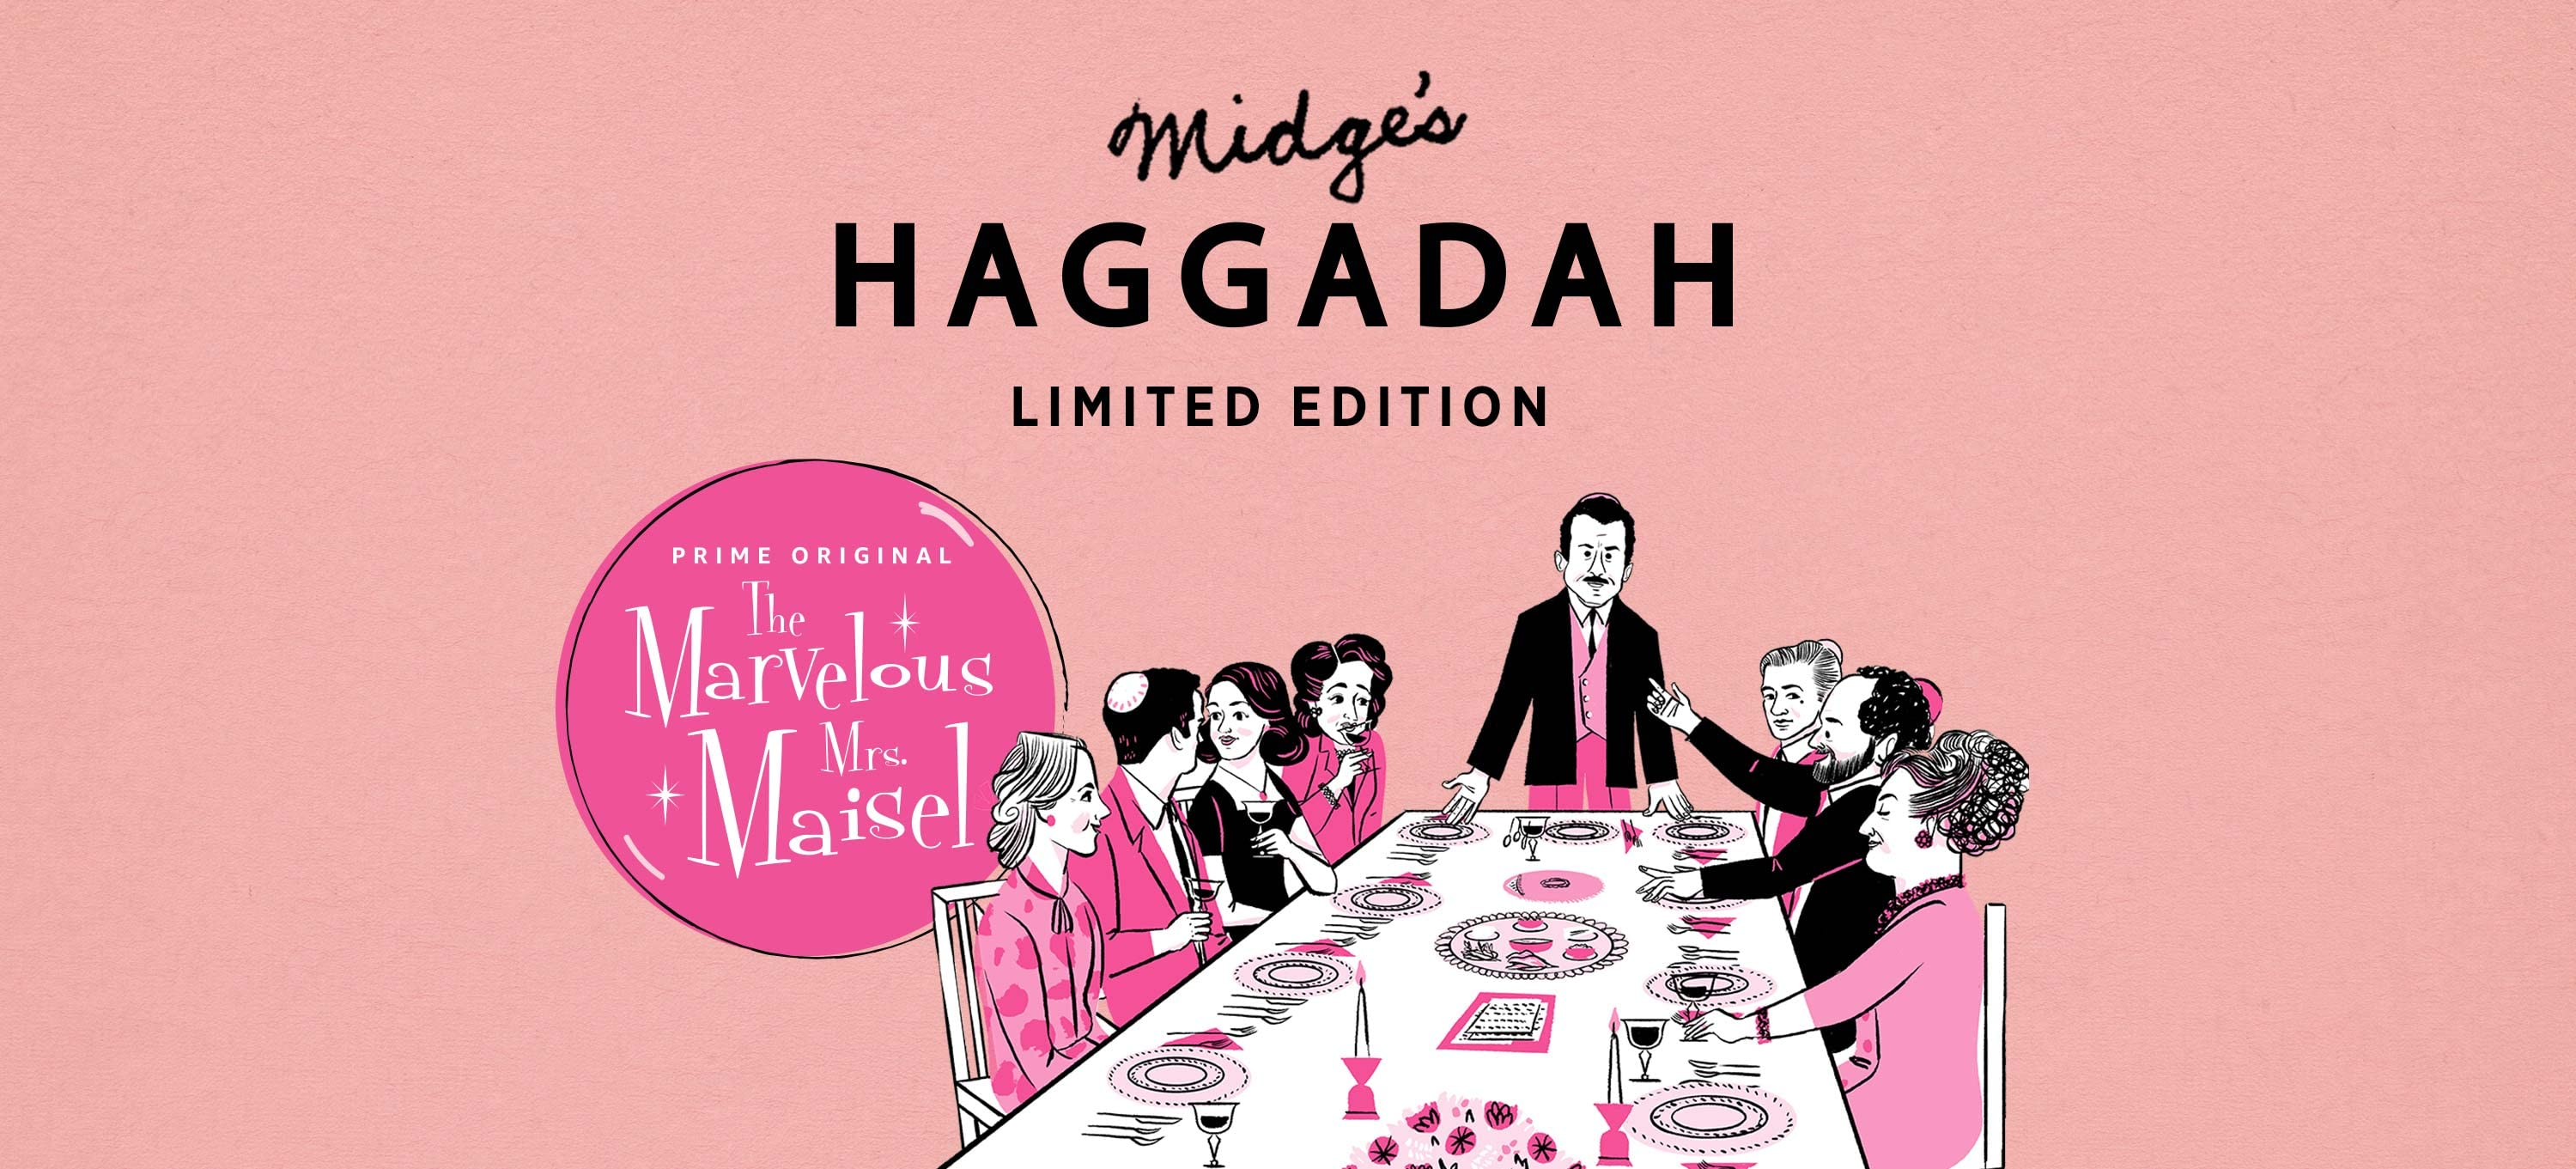 The Marvelous Mrs. Maisel Midge's Haggadah, Limited Edition